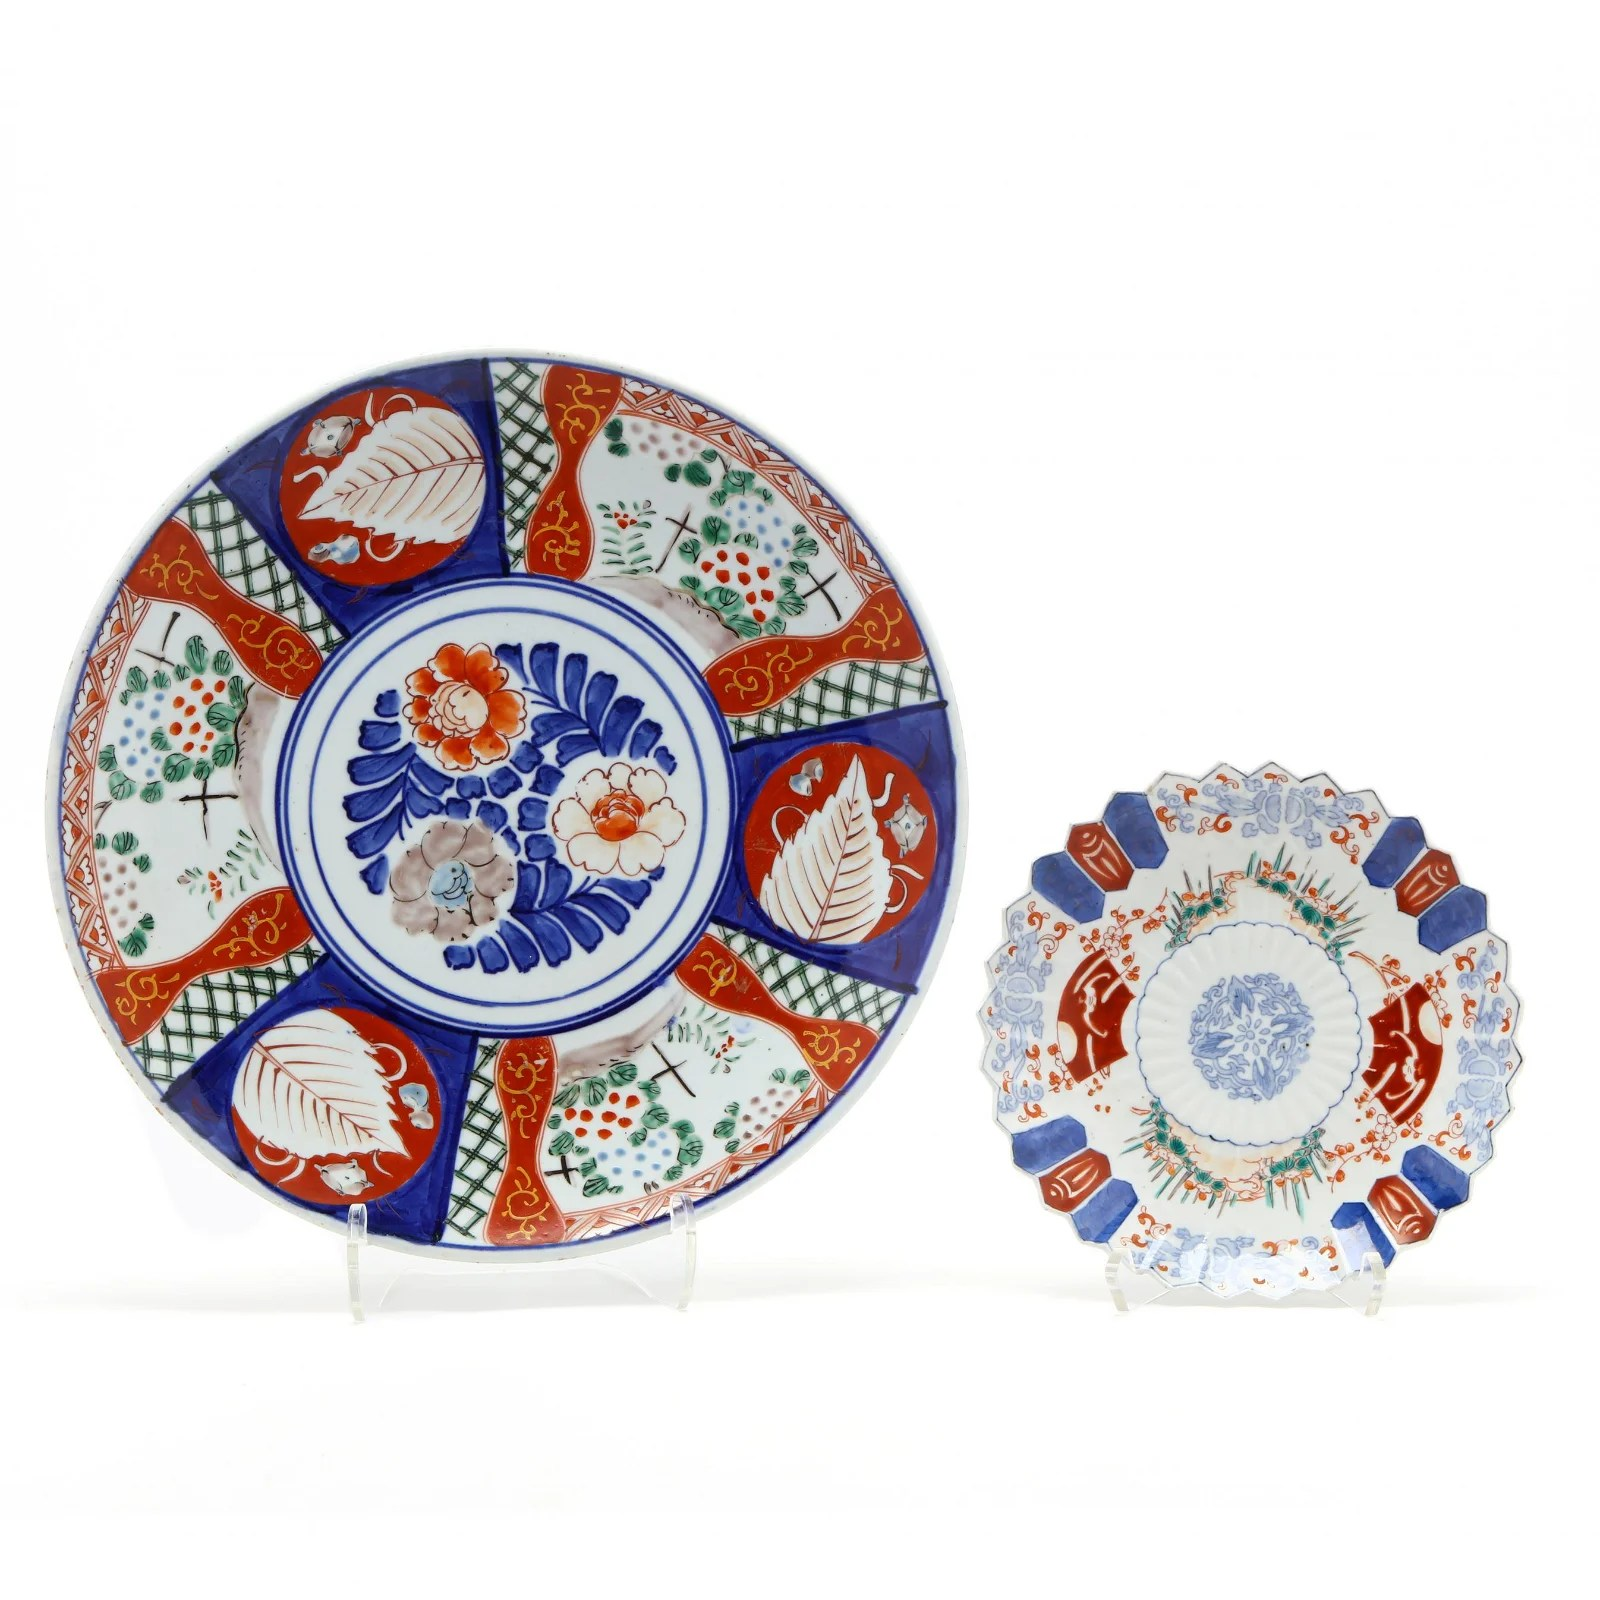 A Japanese Imari Porcelain Charger and Plate